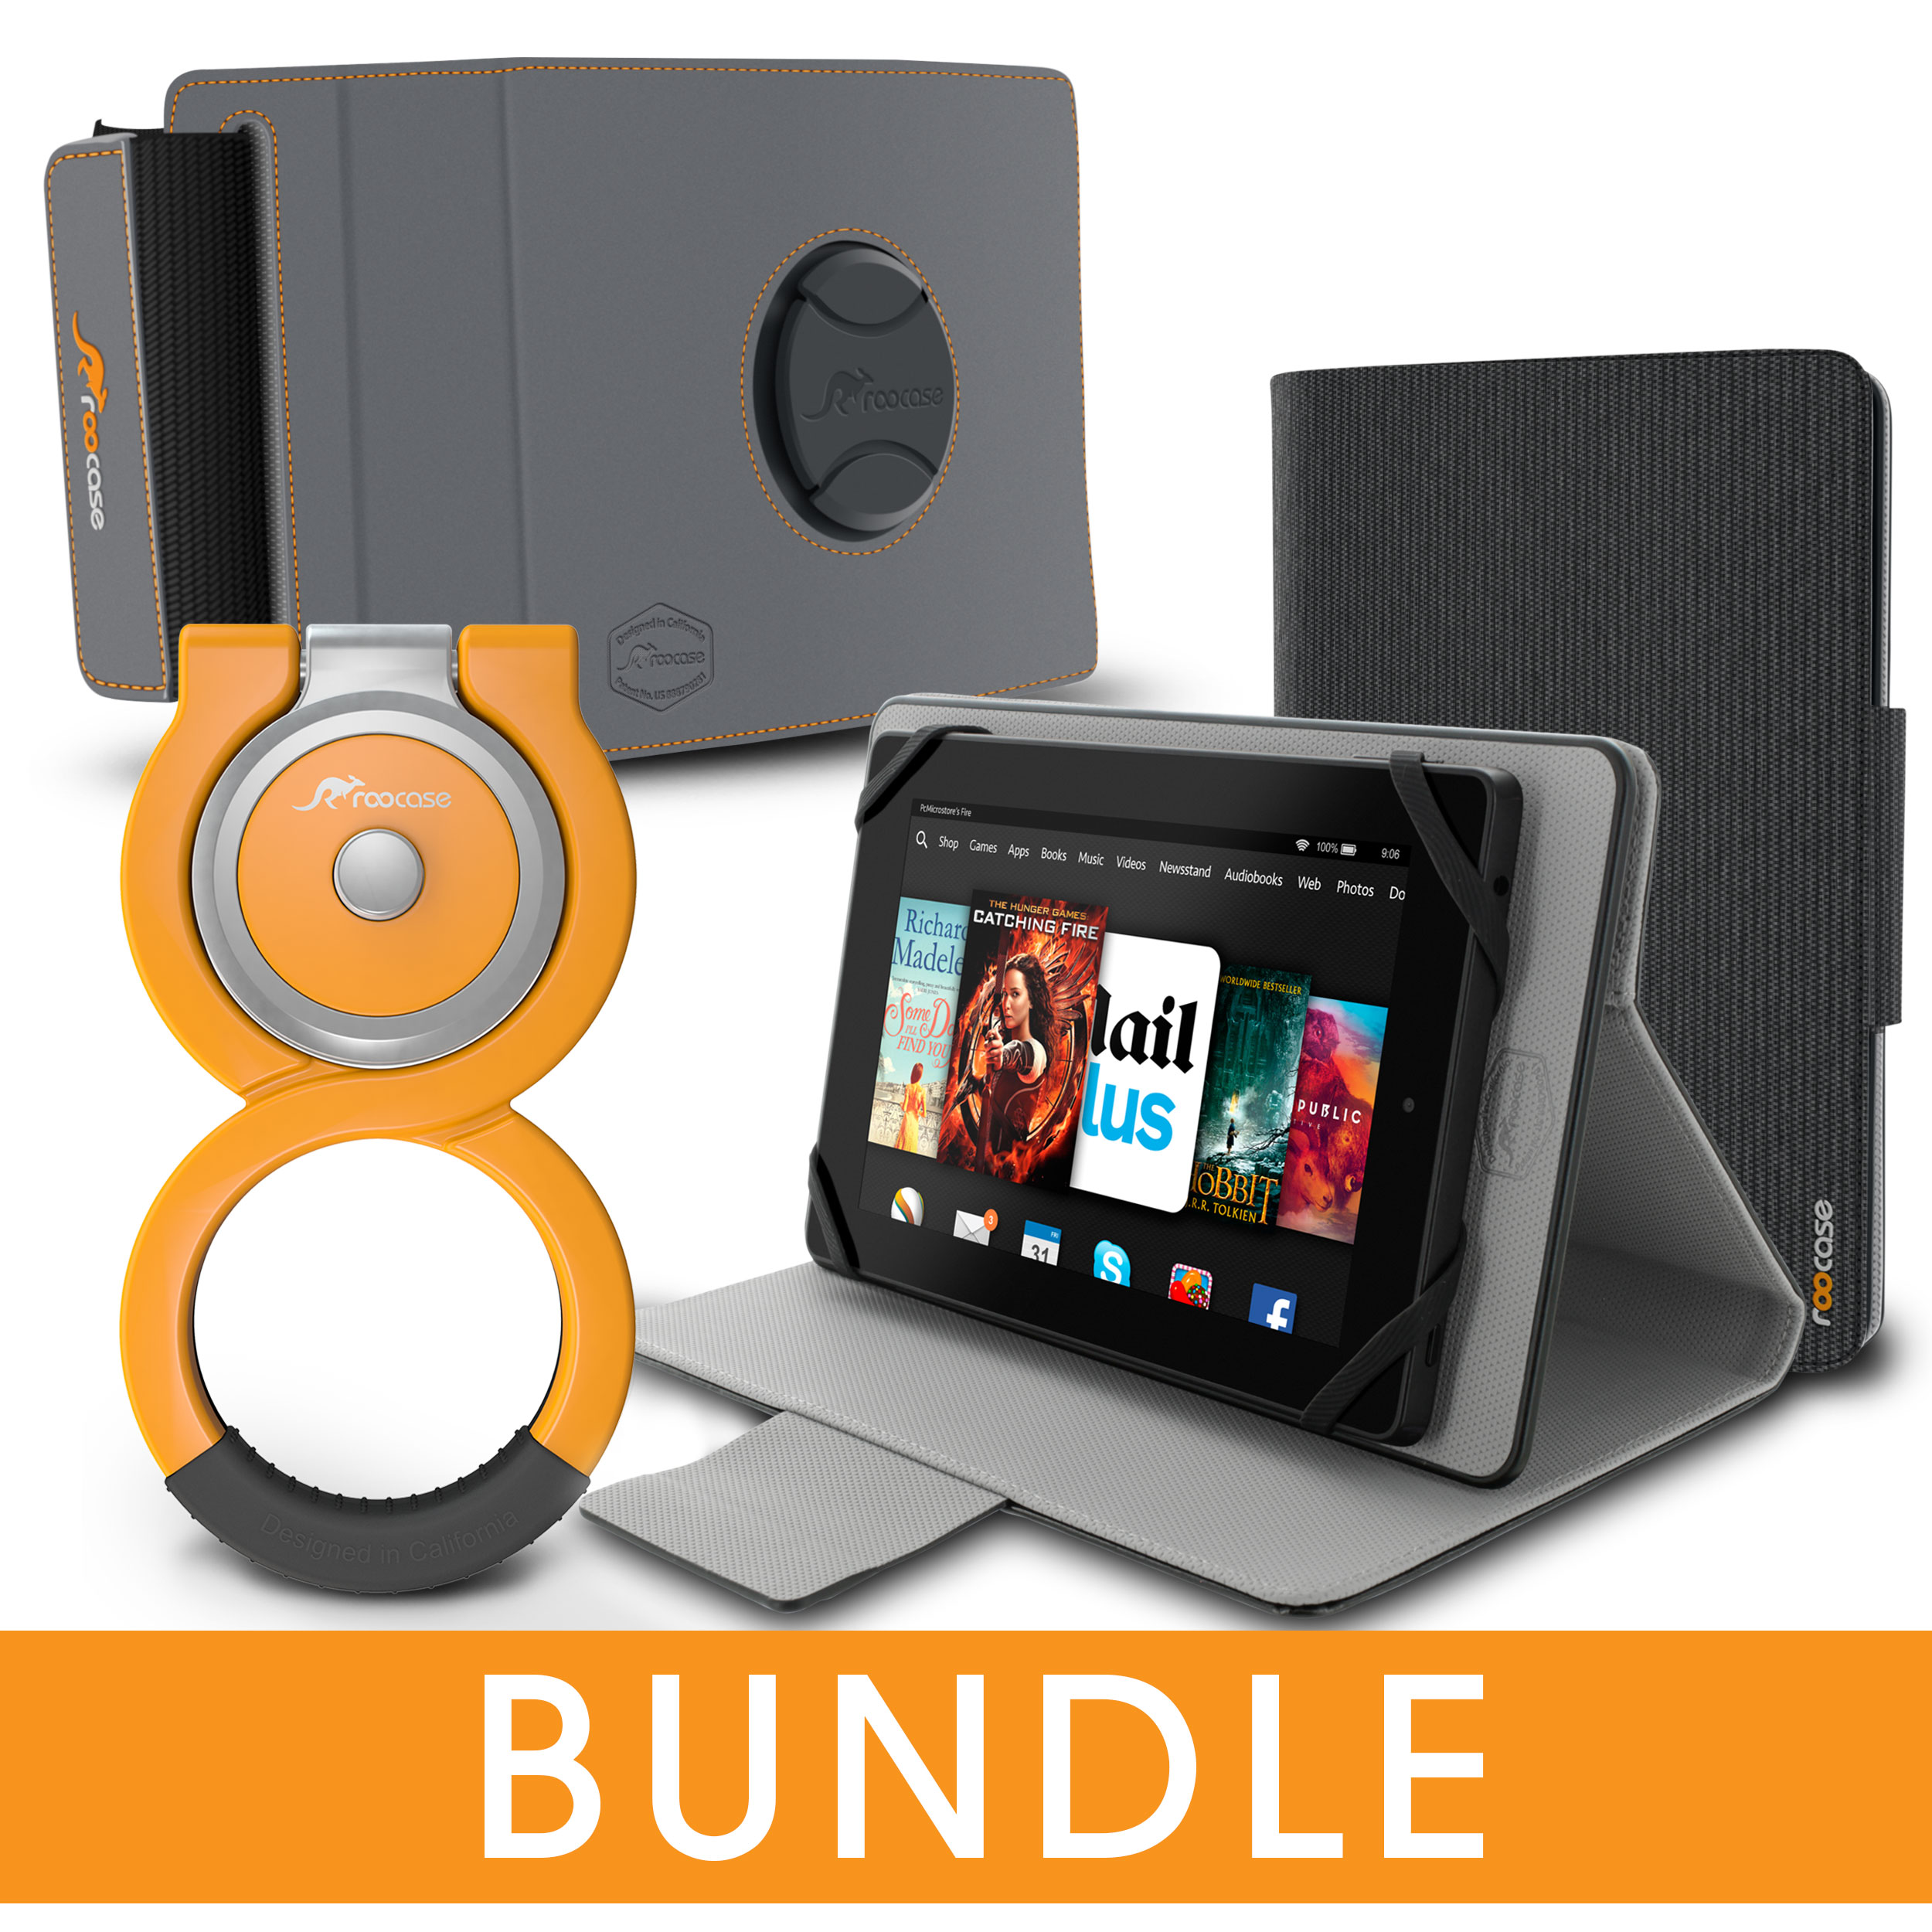 roocase Universal Tablet Orb Bundle, Folio Case Cover Stand for Tablet with Orb Loop and Strap - Rotating and Detachable Tablet Shell Case, Black [Patented Orb System]